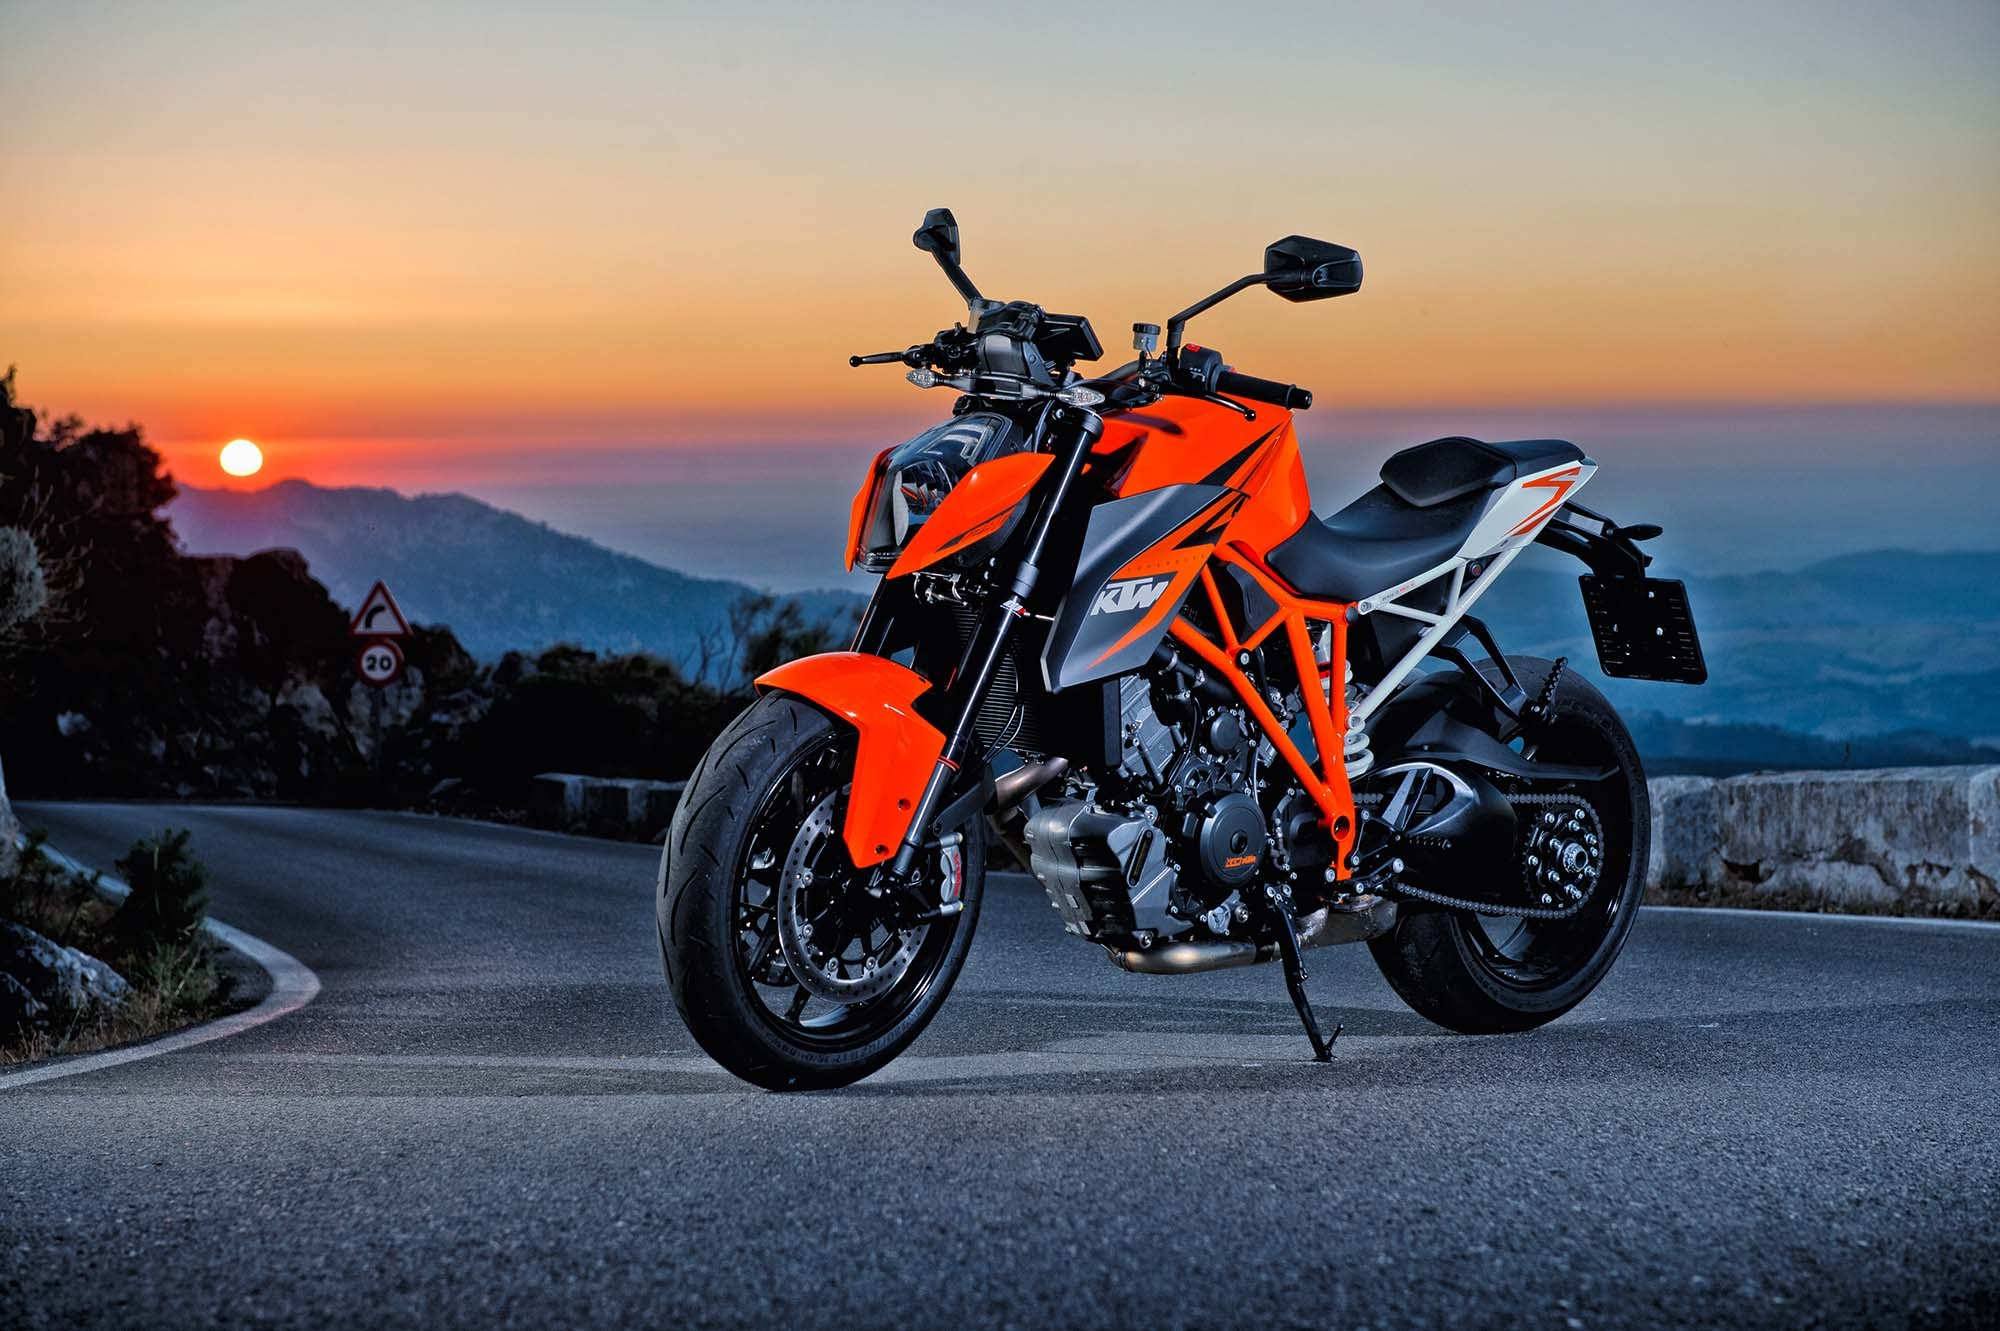 2017 ktm super 2000 1331 ktm super duke 1290 rrrrr pinterest. Black Bedroom Furniture Sets. Home Design Ideas